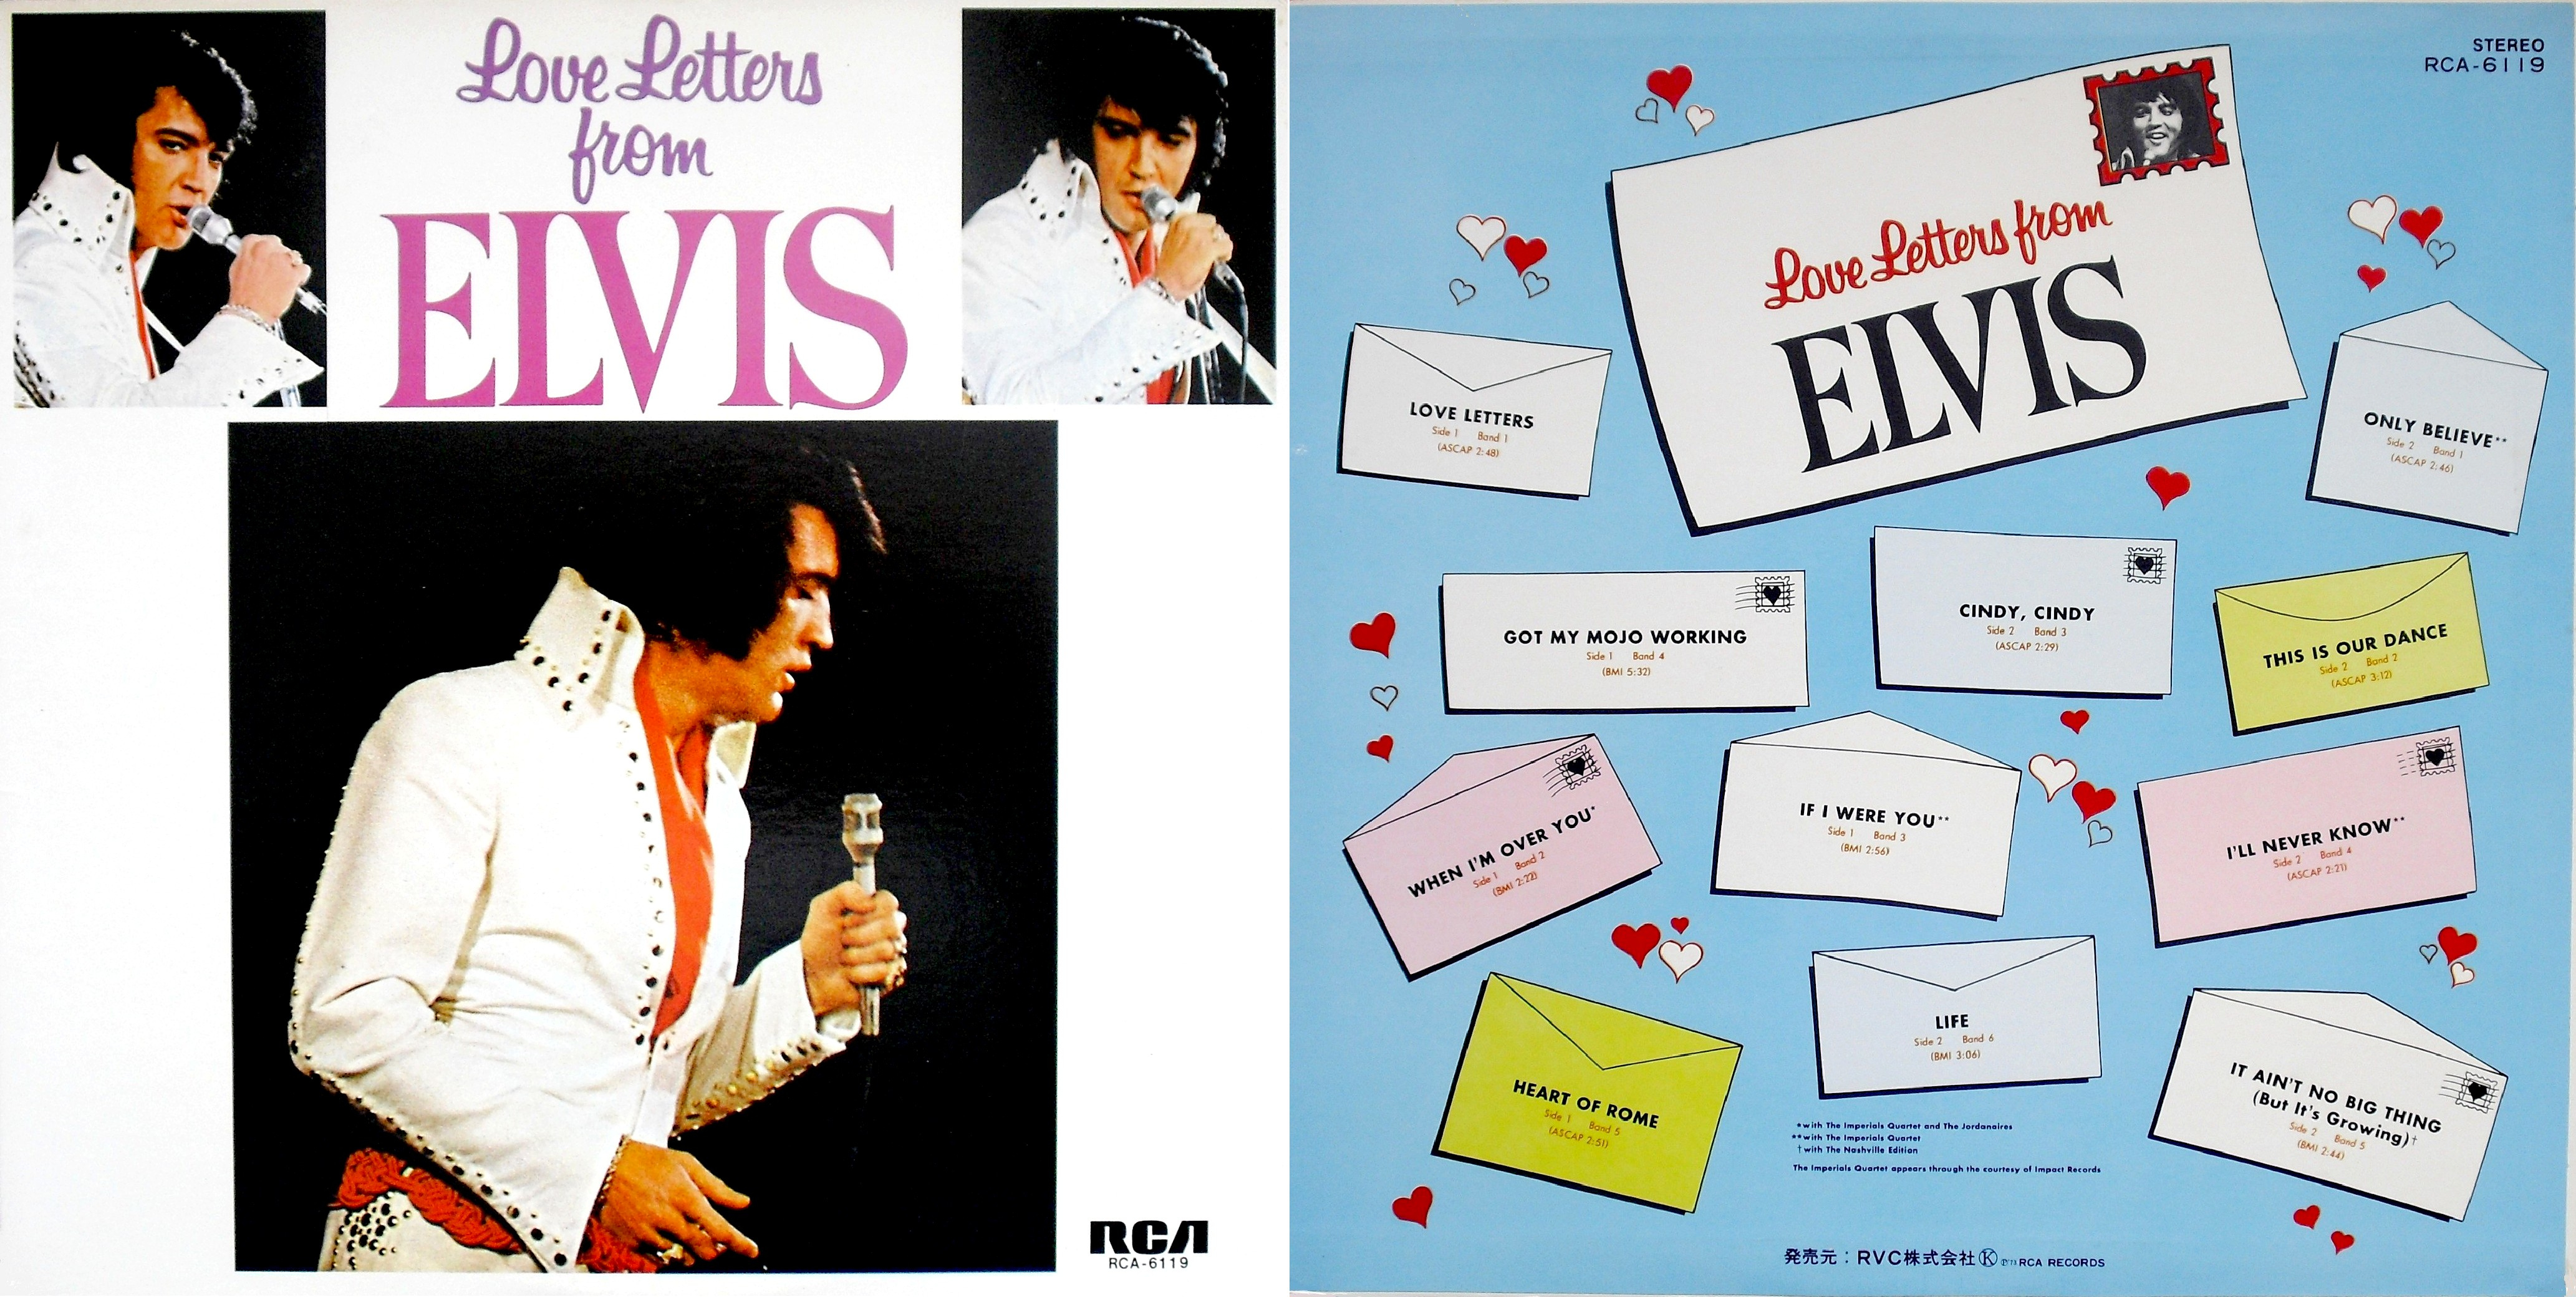 LOVE LETTERS FROM ELVIS Coverohneobiwrfob